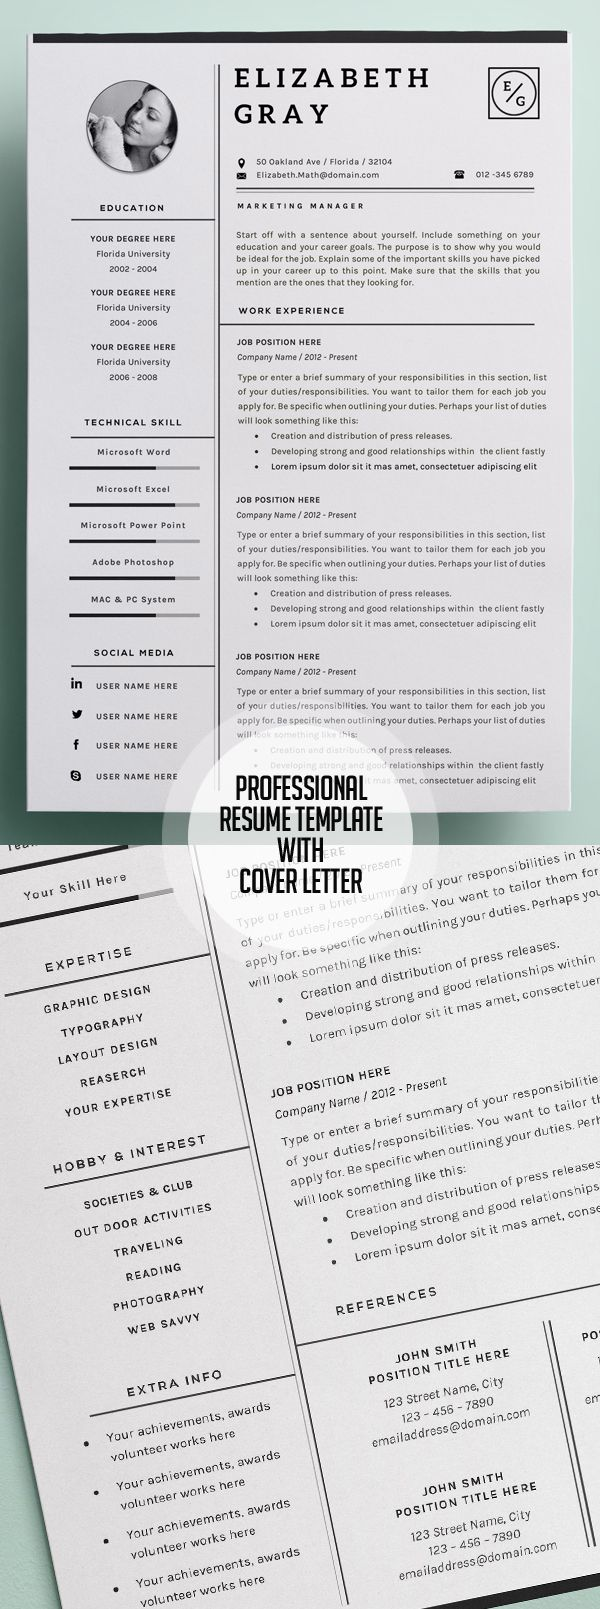 Opposenewapstandardsus  Scenic  Resume Ideas On Pinterest  Resume Resume Templates And  With Interesting Professional And Modern Resume Template With Page Cover Cvtemplate With Endearing Best Font For Resumes Also Custodian Resume In Addition Teaching Assistant Resume And Lawyer Resume As Well As Restaurant Server Resume Additionally References Resume From Pinterestcom With Opposenewapstandardsus  Interesting  Resume Ideas On Pinterest  Resume Resume Templates And  With Endearing Professional And Modern Resume Template With Page Cover Cvtemplate And Scenic Best Font For Resumes Also Custodian Resume In Addition Teaching Assistant Resume From Pinterestcom